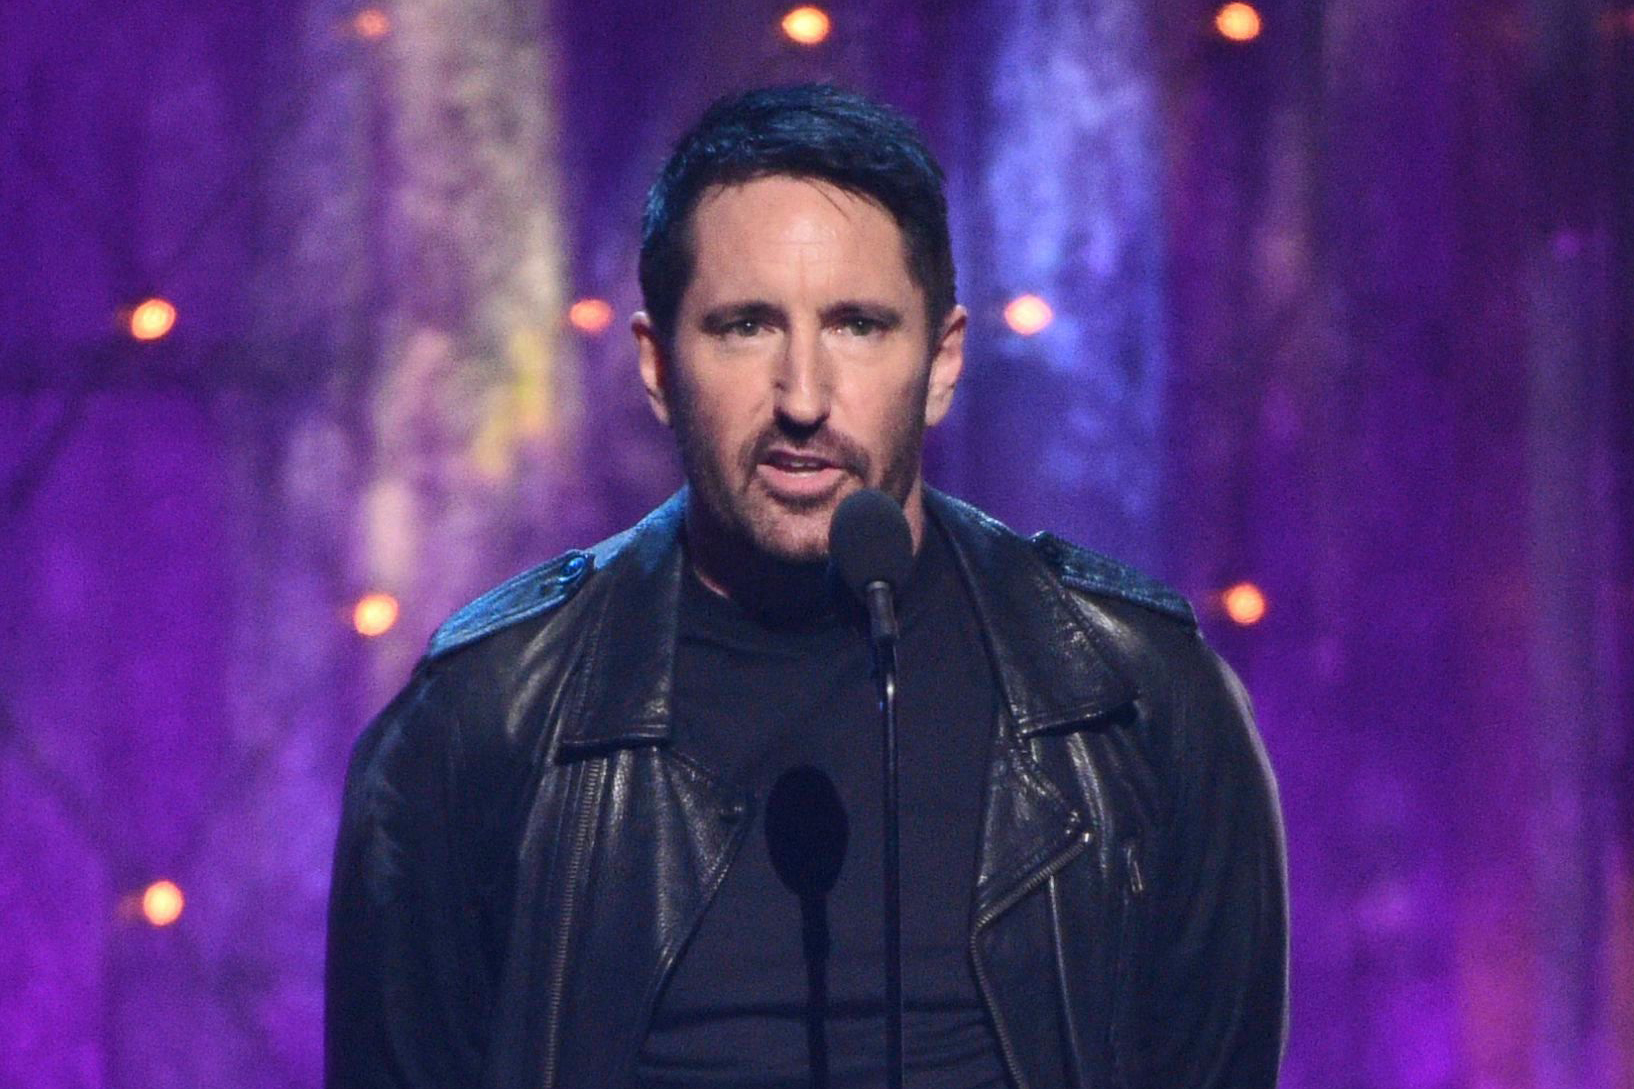 Country Music Veteran Trent Reznor Nabs His First CMA Award